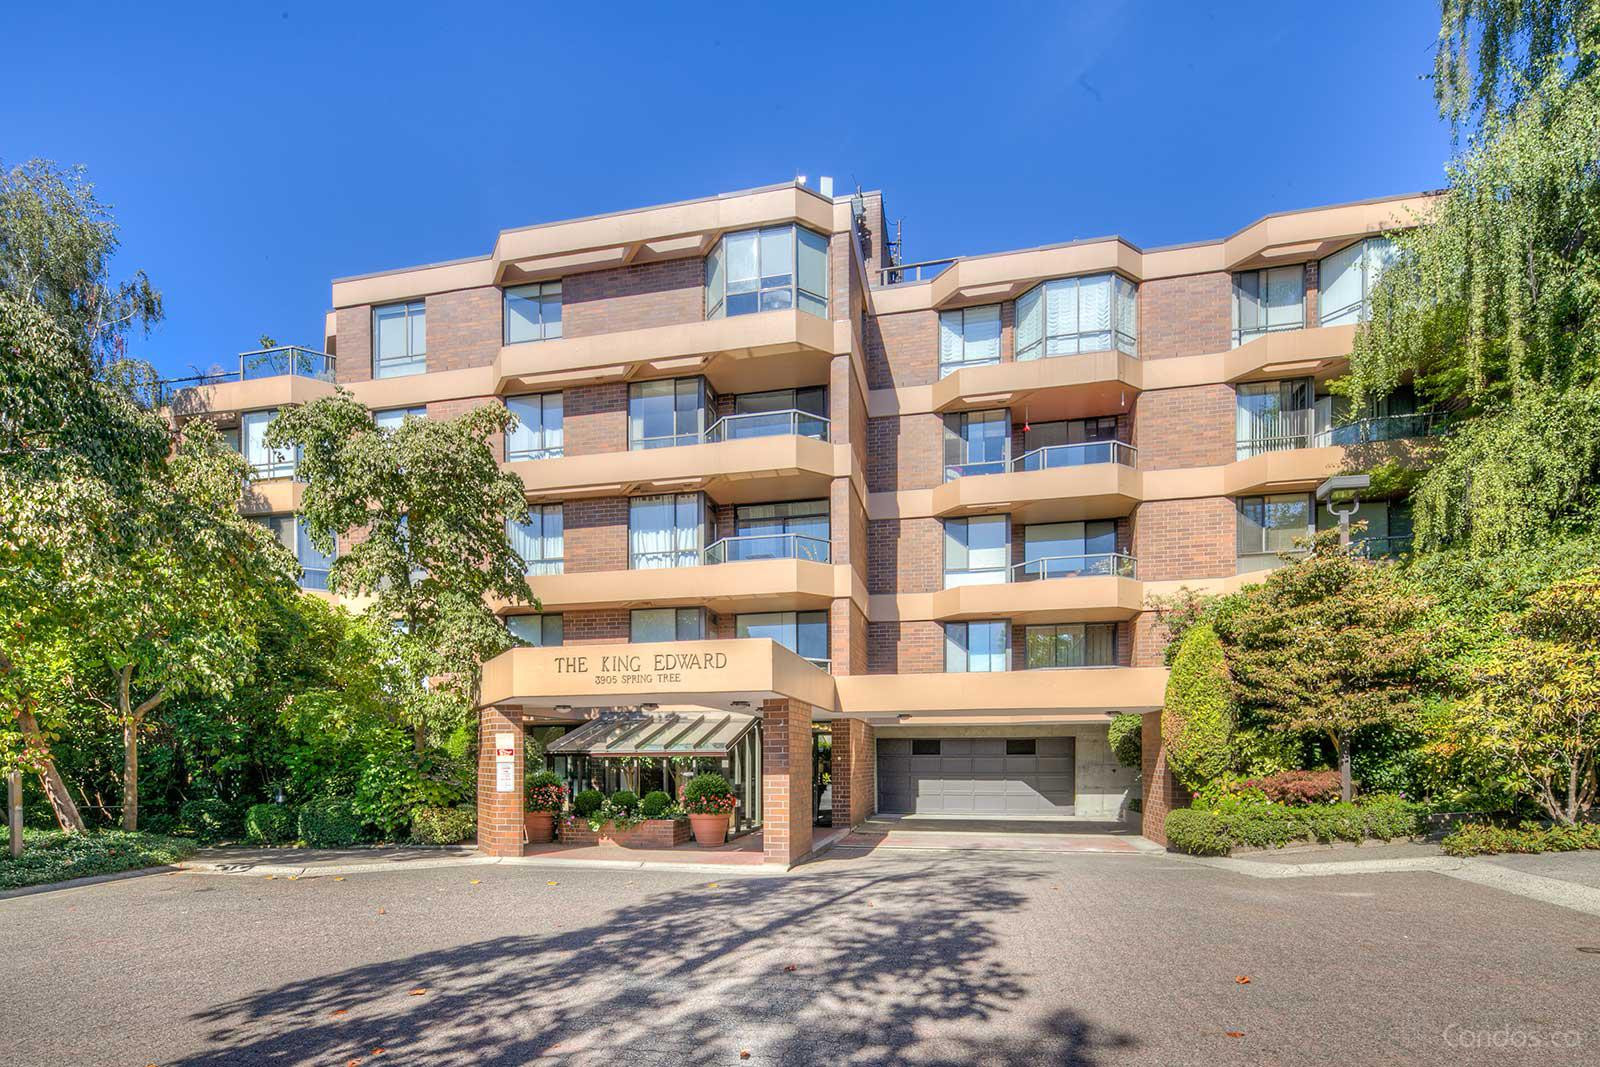 The King Edward at 3905 Springtree Dr, Vancouver 0